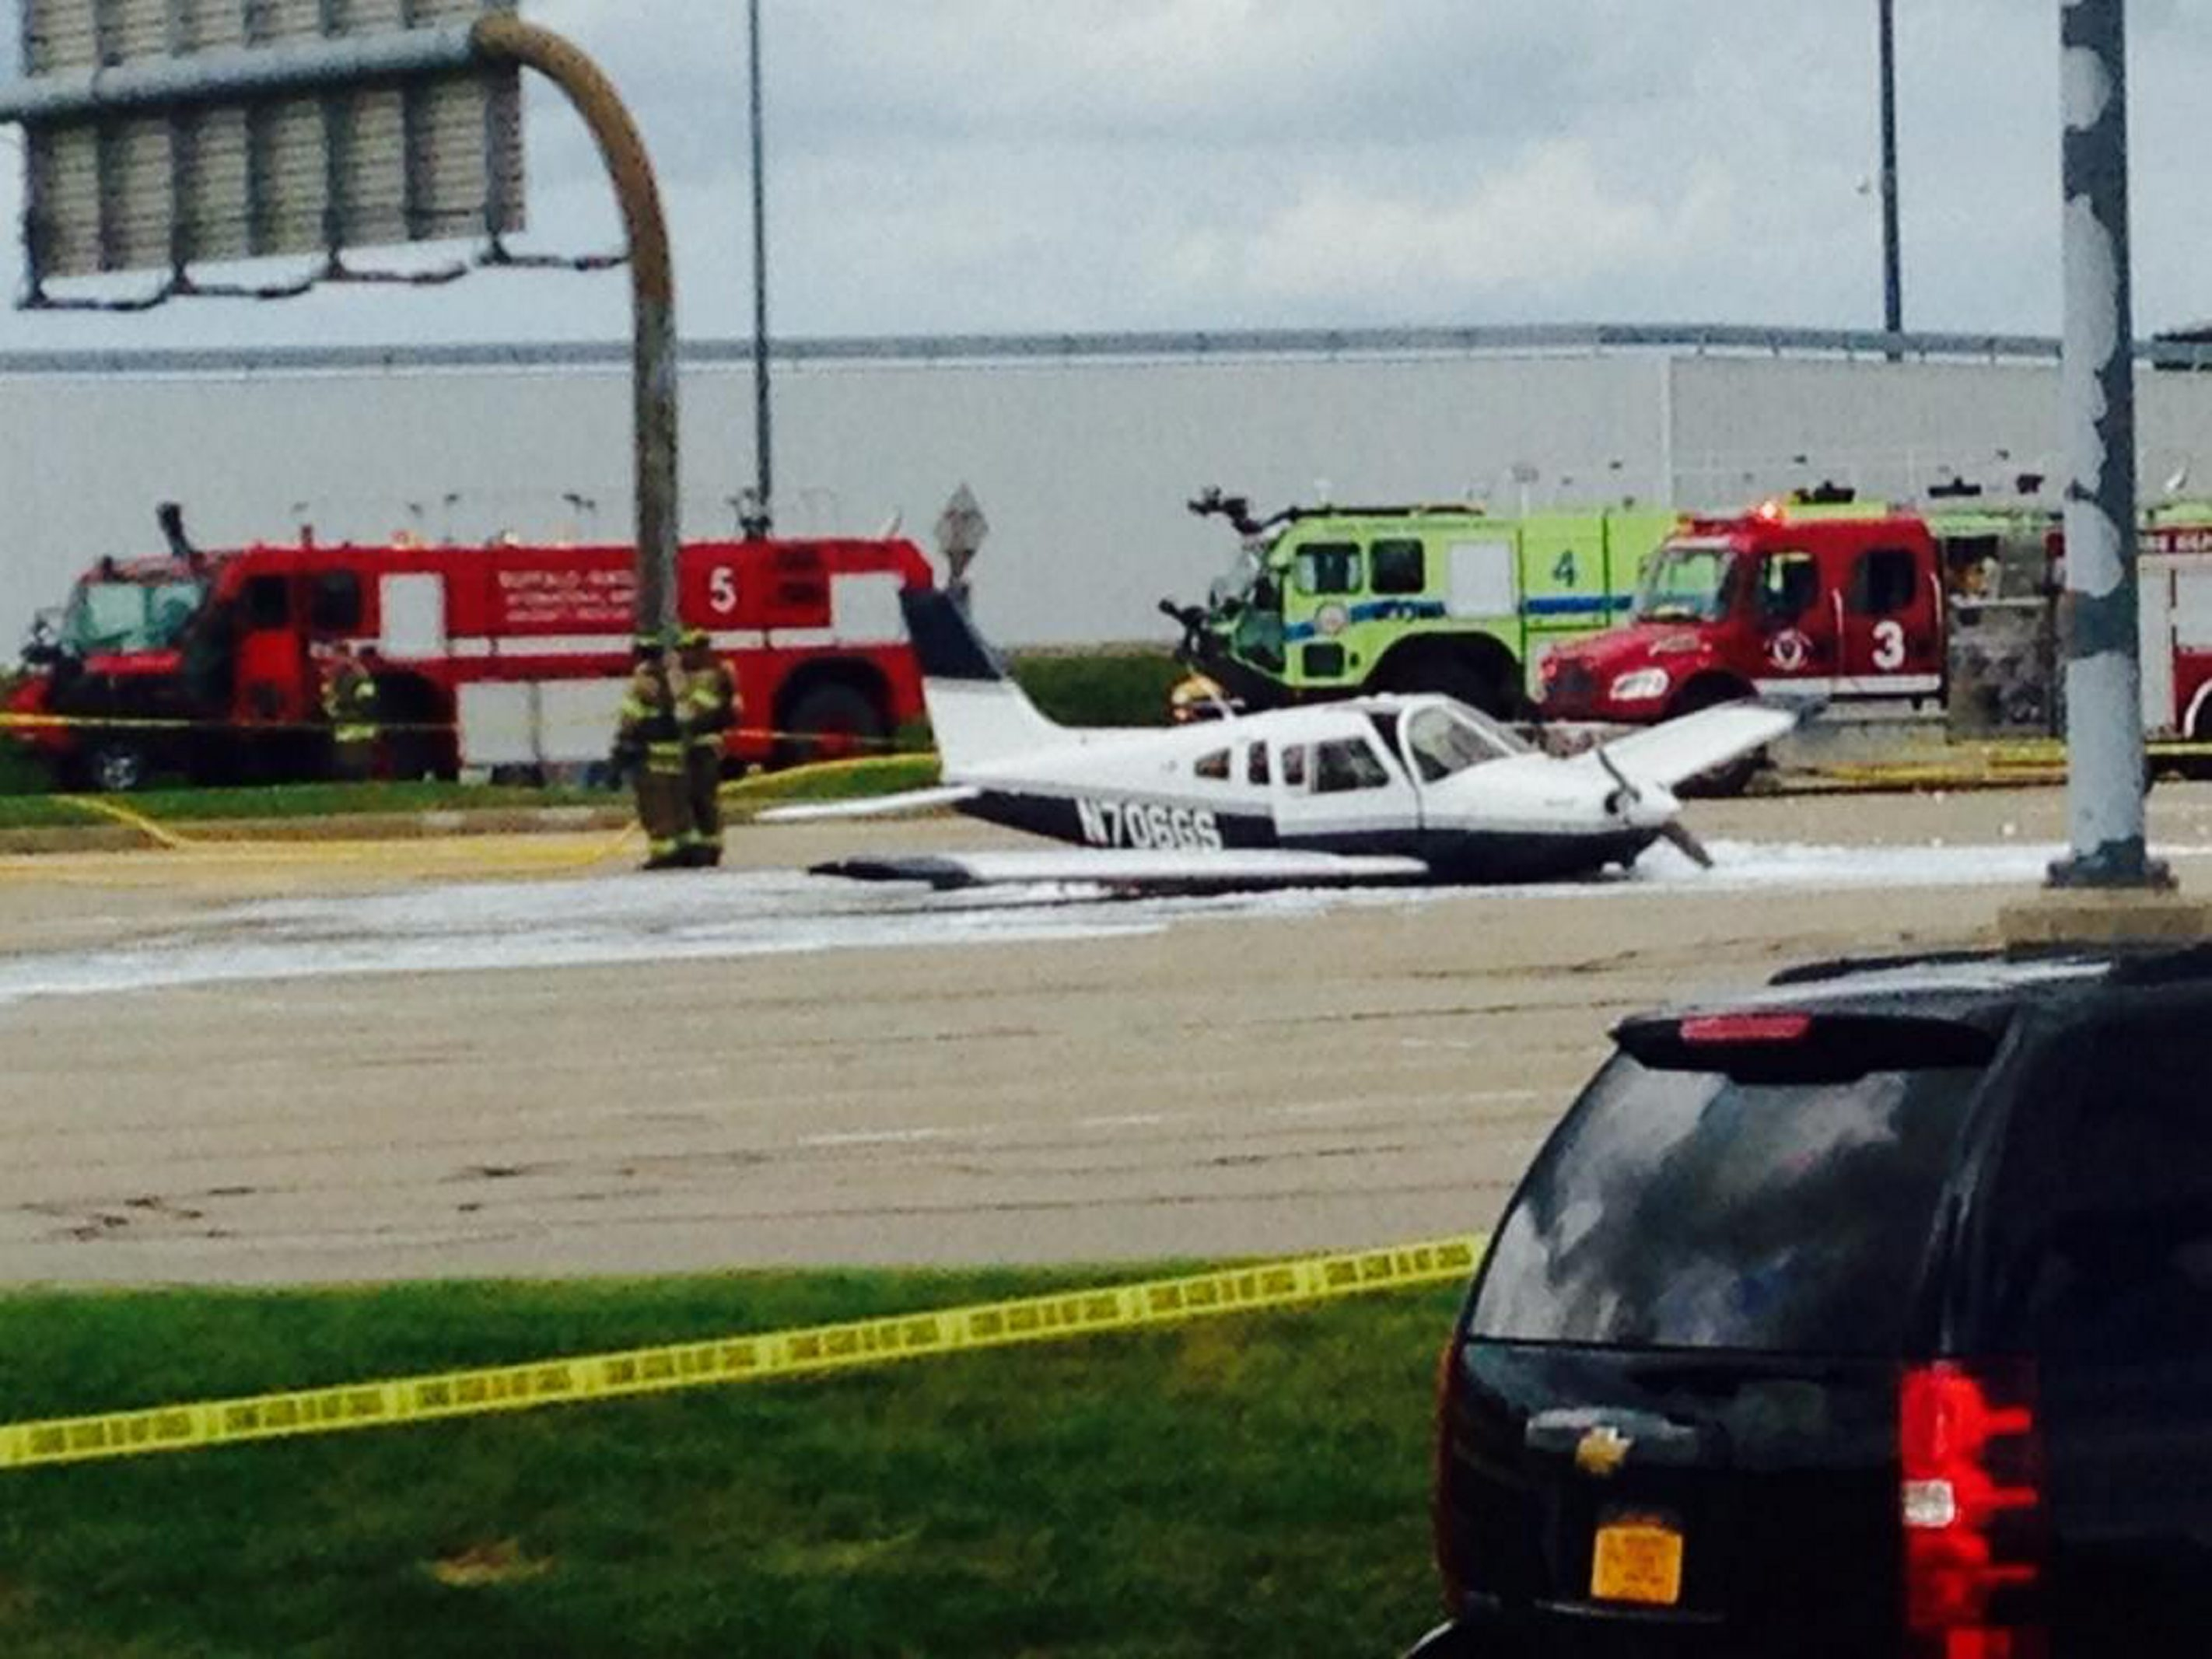 A small plane crash-landed shortly after takeoff Thursday in an empty parking lot at Buffalo Niagara International Airport in Cheektowaga.